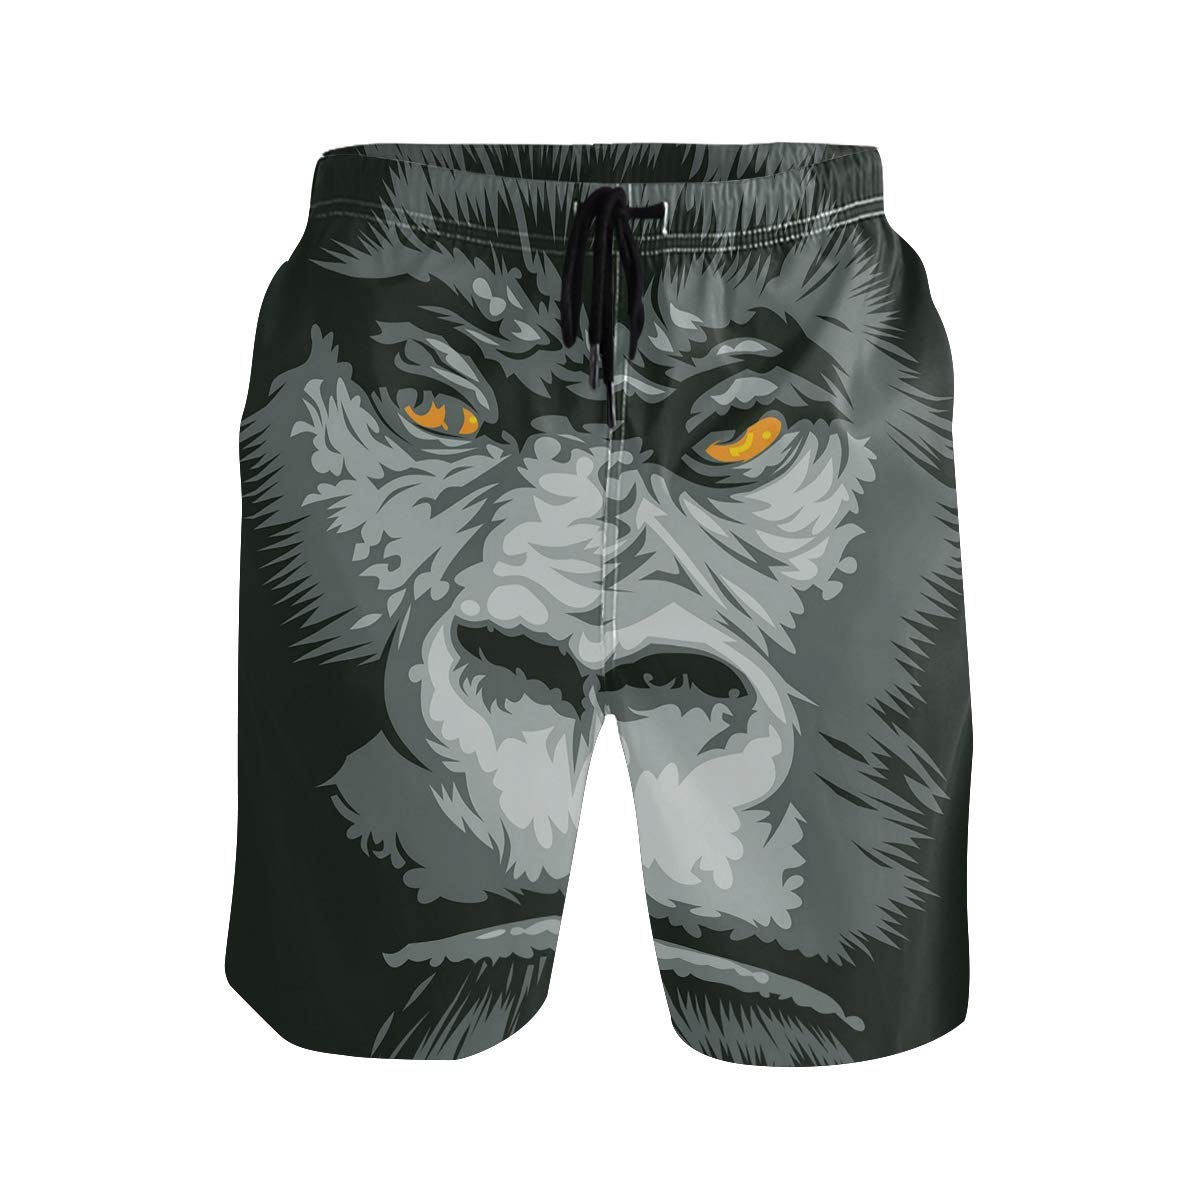 KVMV Clear Underwater Corals and Tropical Fishes Stingray Starfish Egyptian Sea Casual Swim Trunks All